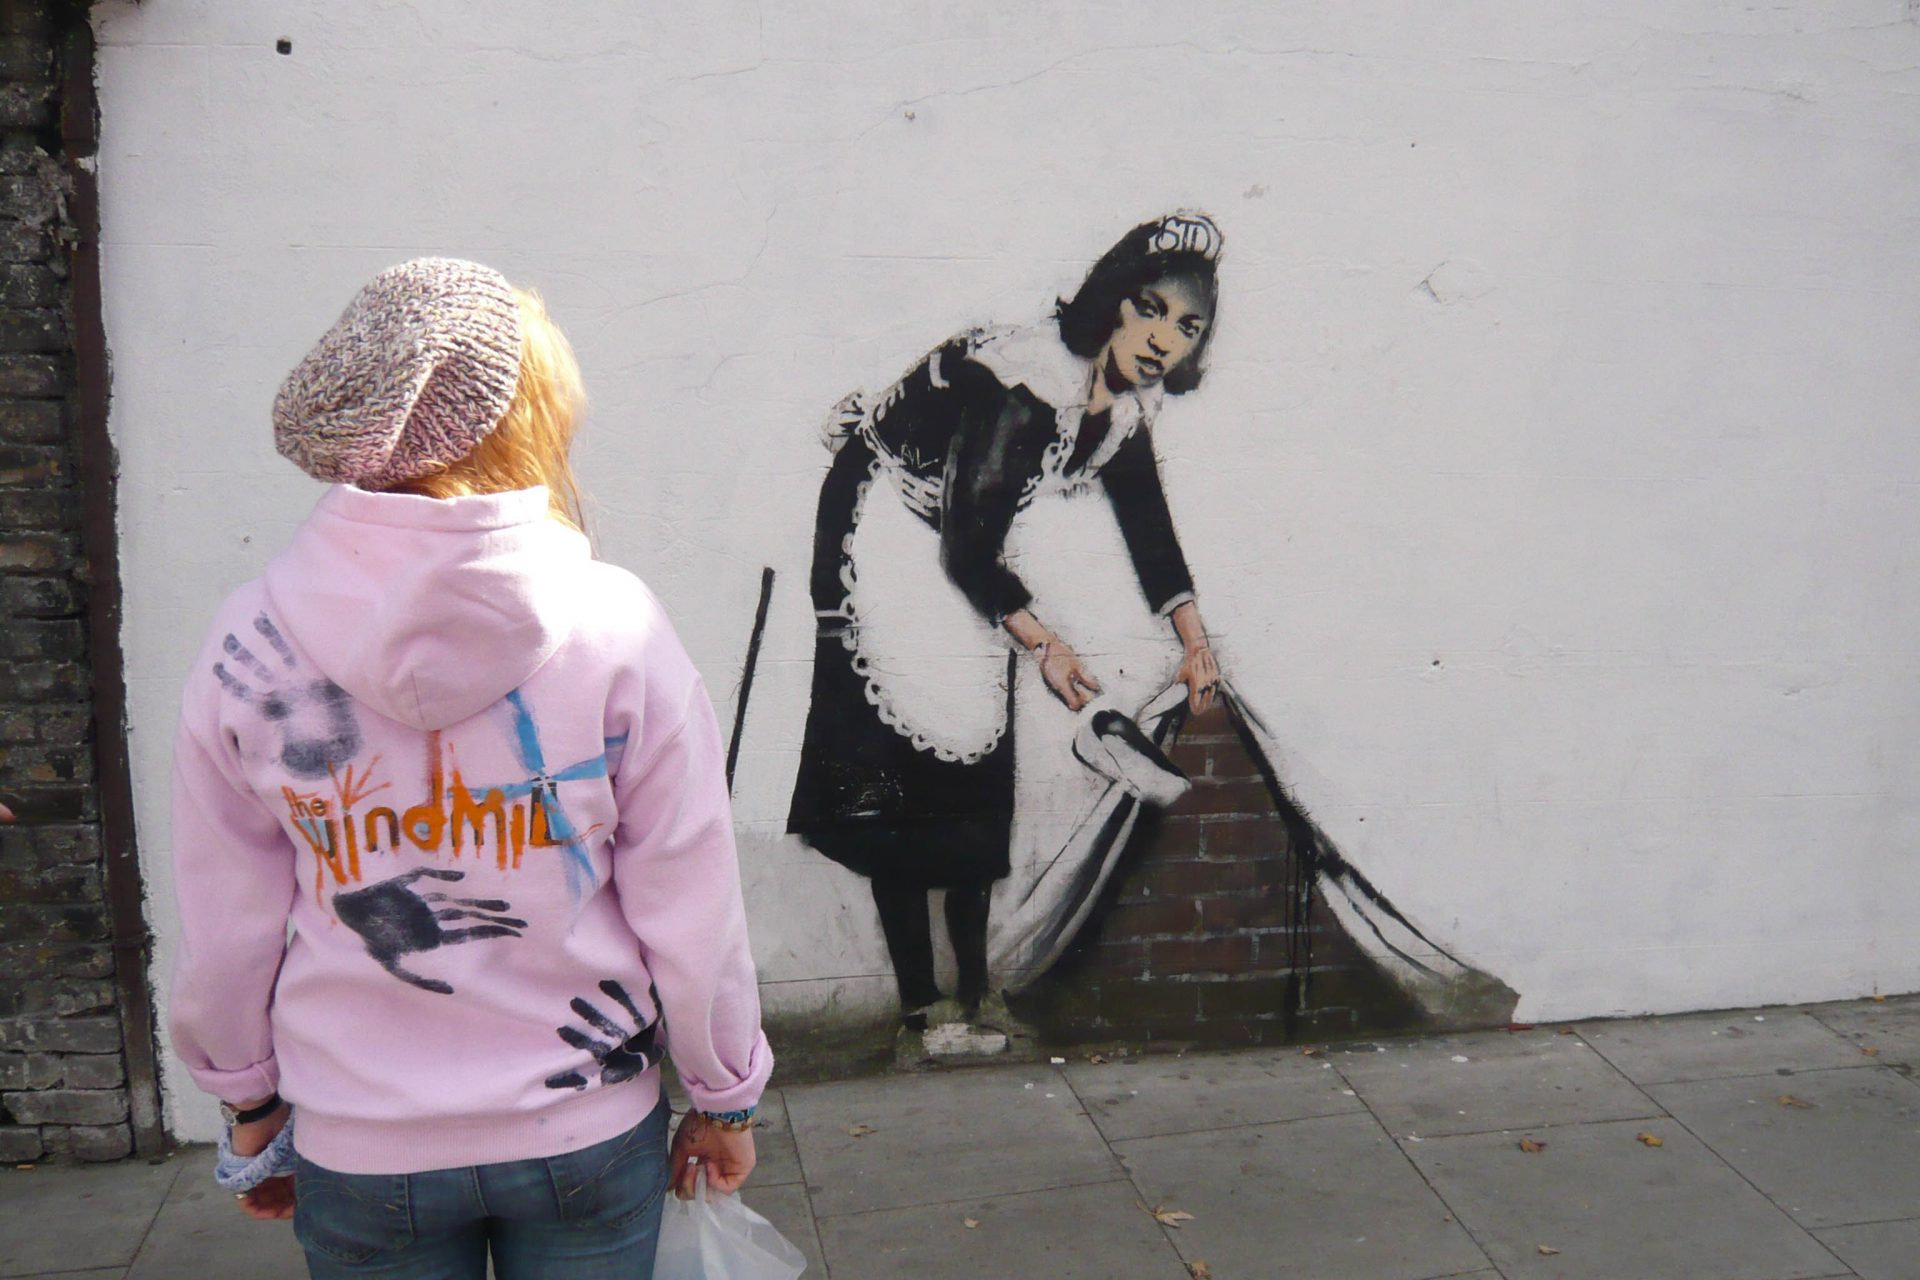 Bansky graffiti of chambermaid